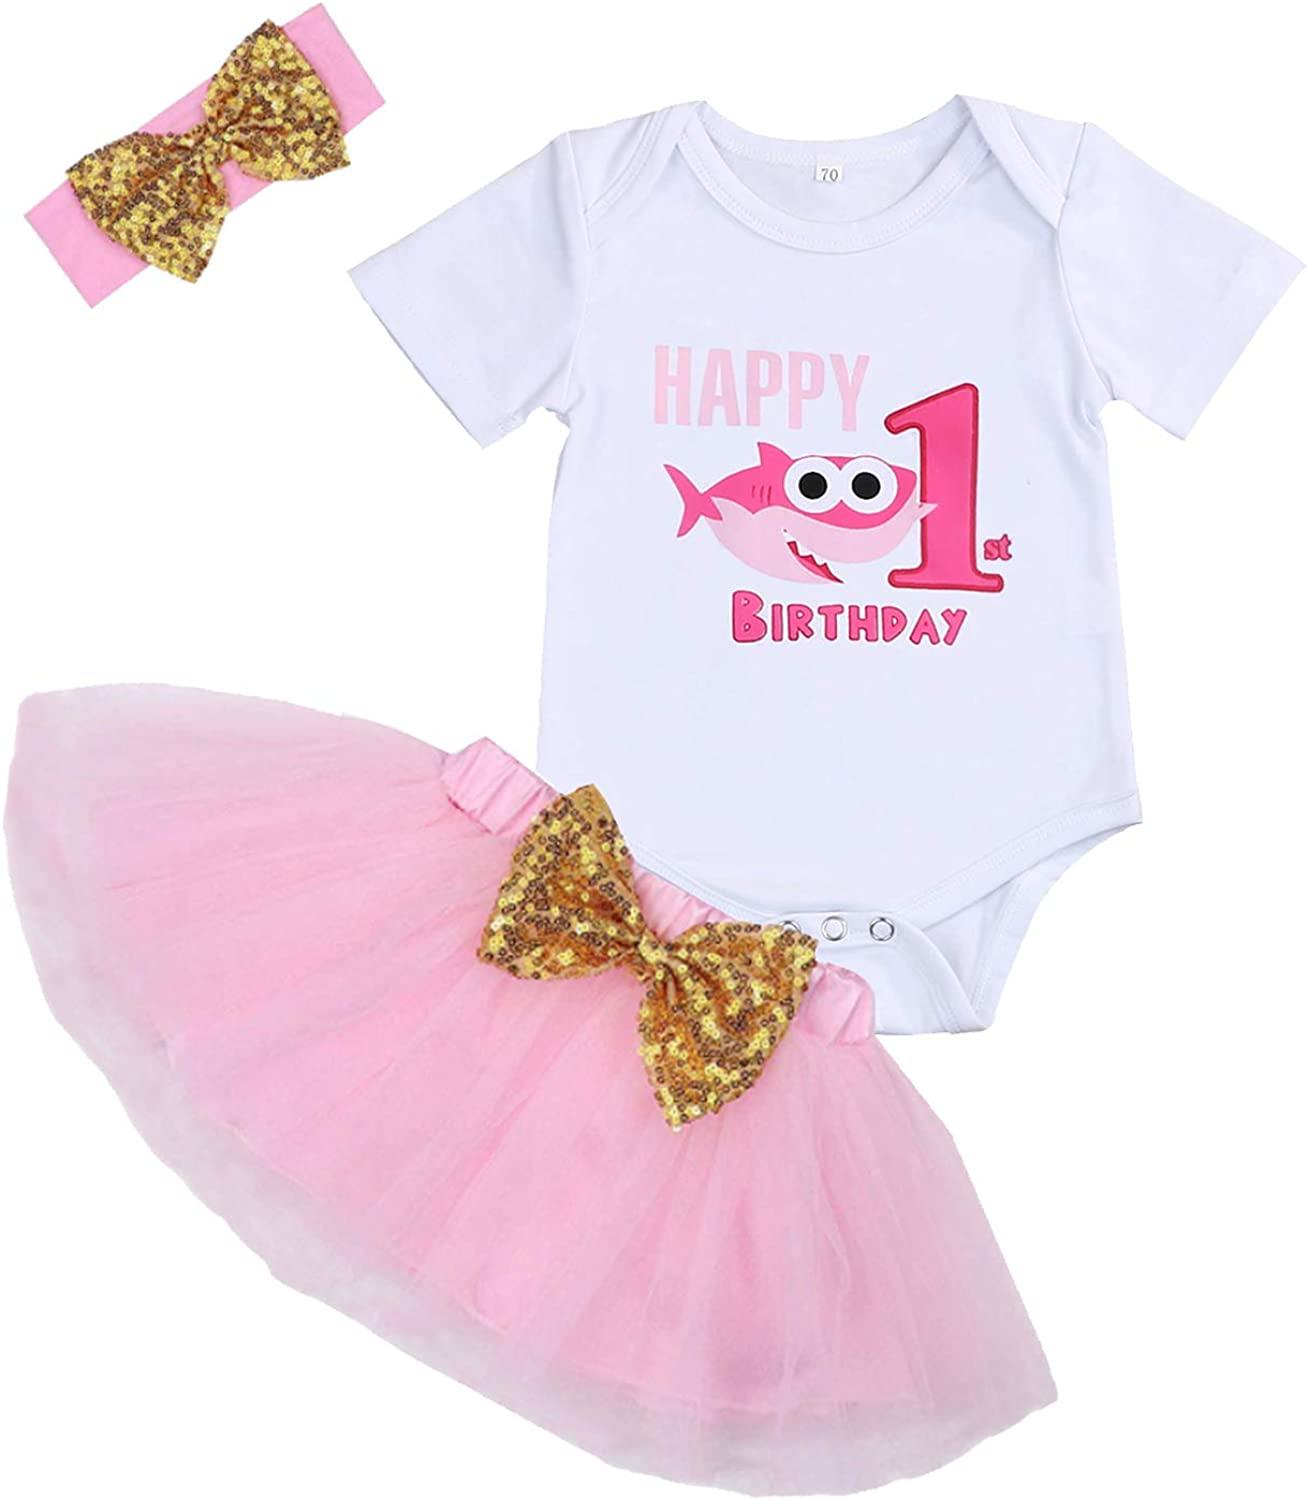 Baby Girl Birthday Shark Cake Smash Outfit Infant Girl 1st Birthday Romper Tutu Skirt with Headband Clothes Set